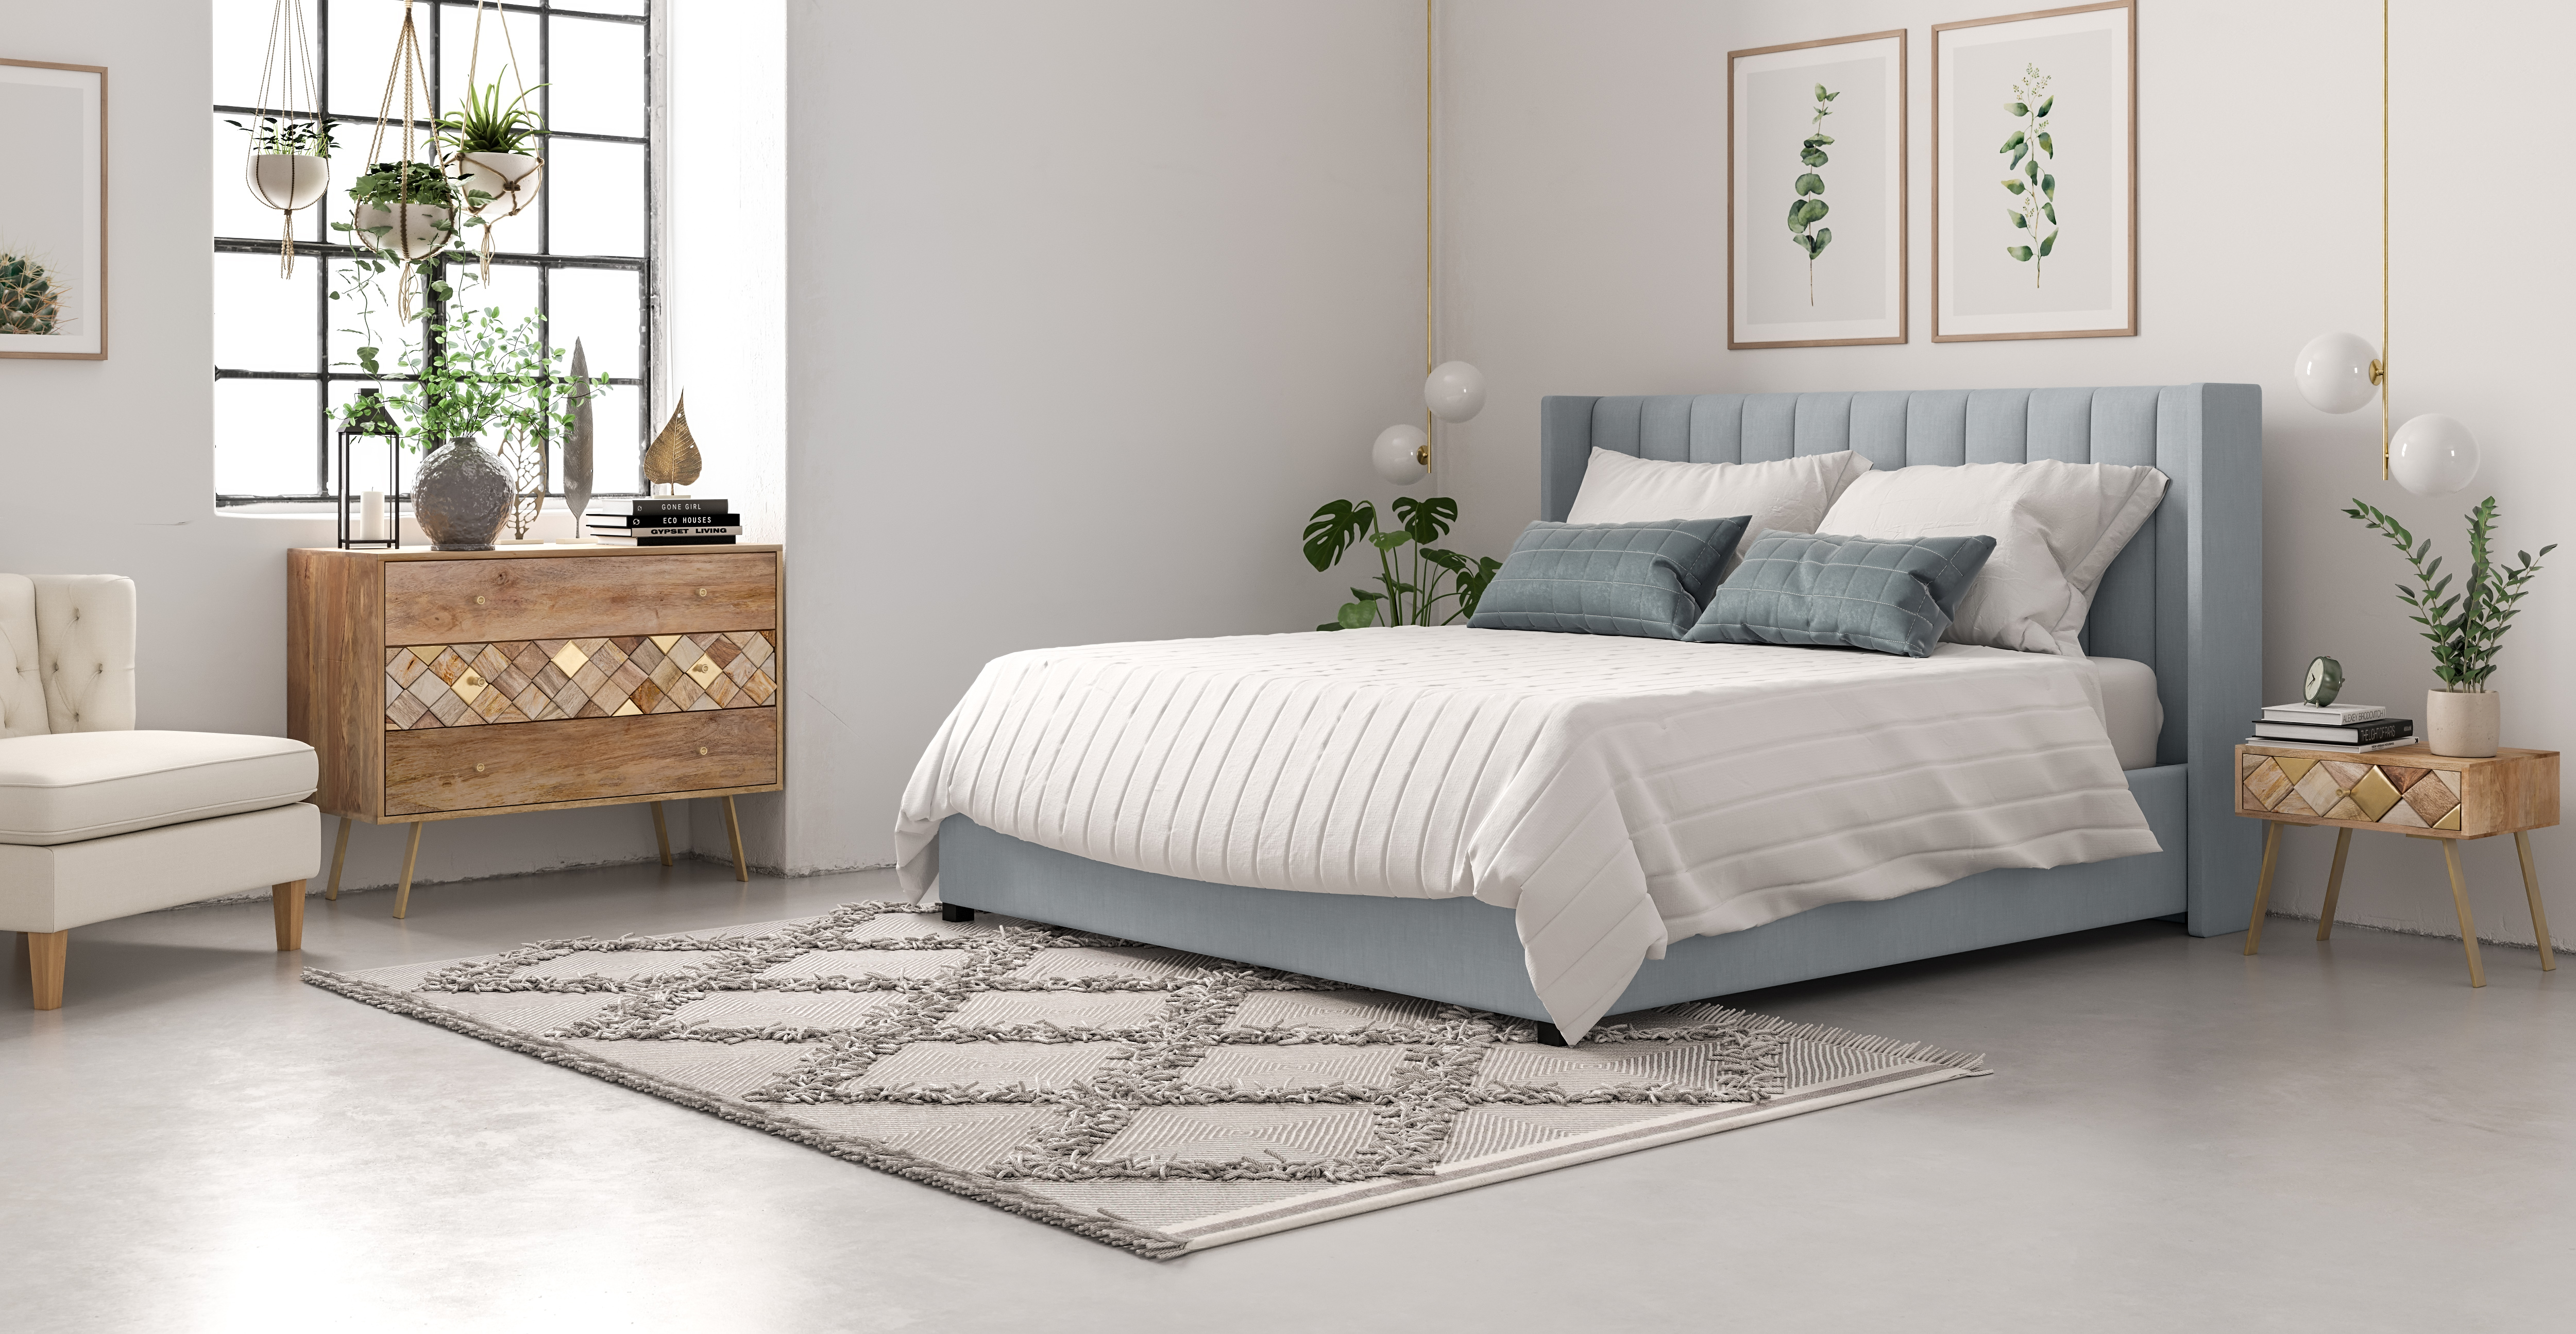 Isabella Queen Size Bed Head styled in classic traditional bedroom